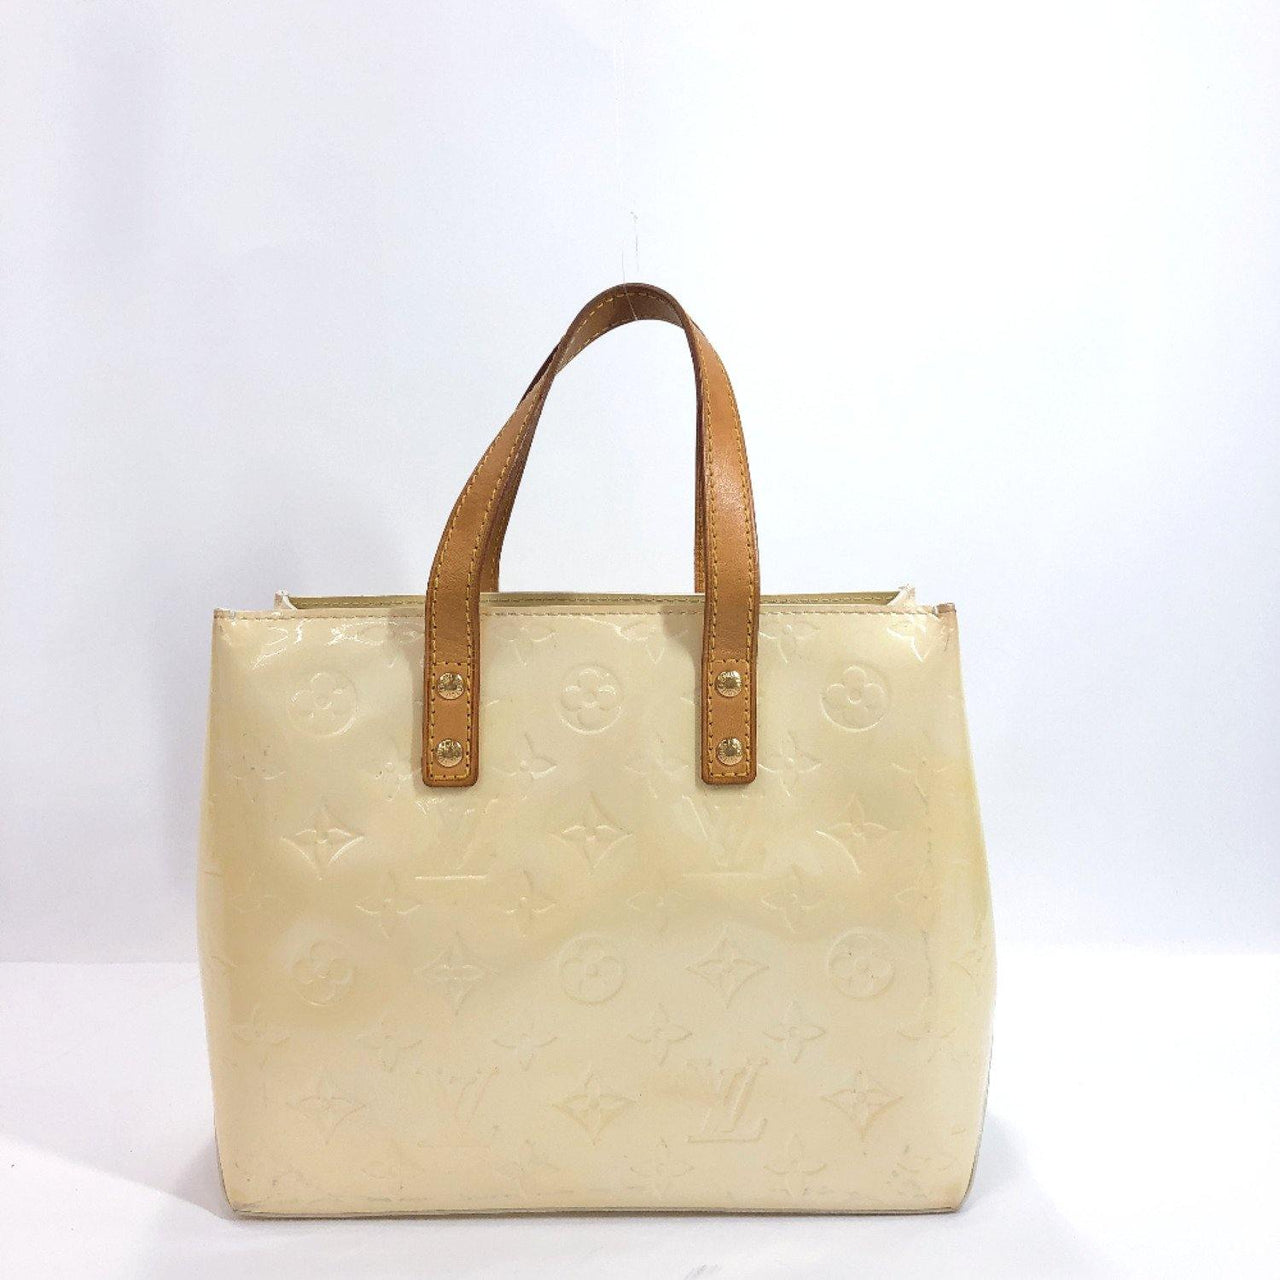 LOUIS VUITTON Handbag M91336 Lead PM Monogram Vernis/Leather white Women Used - JP-BRANDS.com